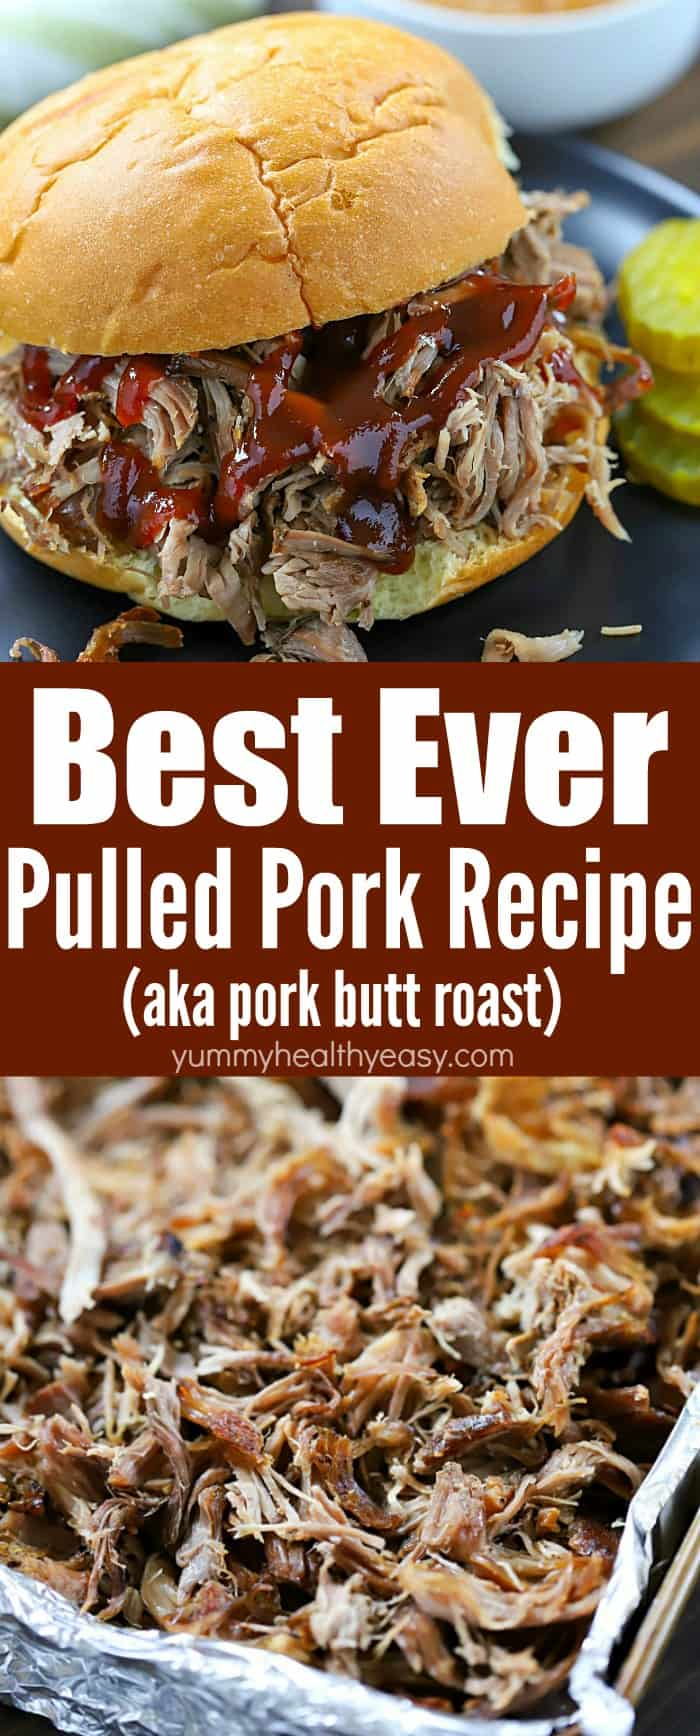 This Best Ever Pulled Pork Sandwich Recipe is seriously so easy and so yummy! A pork butt is slow cooked in the oven, then shredded and put onto buns with BBQ sauce. The pork is so tender and flavorful! This is definitely a slam dunk dinner recipe! #recipe #pulledpork #pork #easyrecipe #comfortfood #burger #sandwich #yummy #deliciousfood #dinner #leftovers #bbq via @jennikolaus